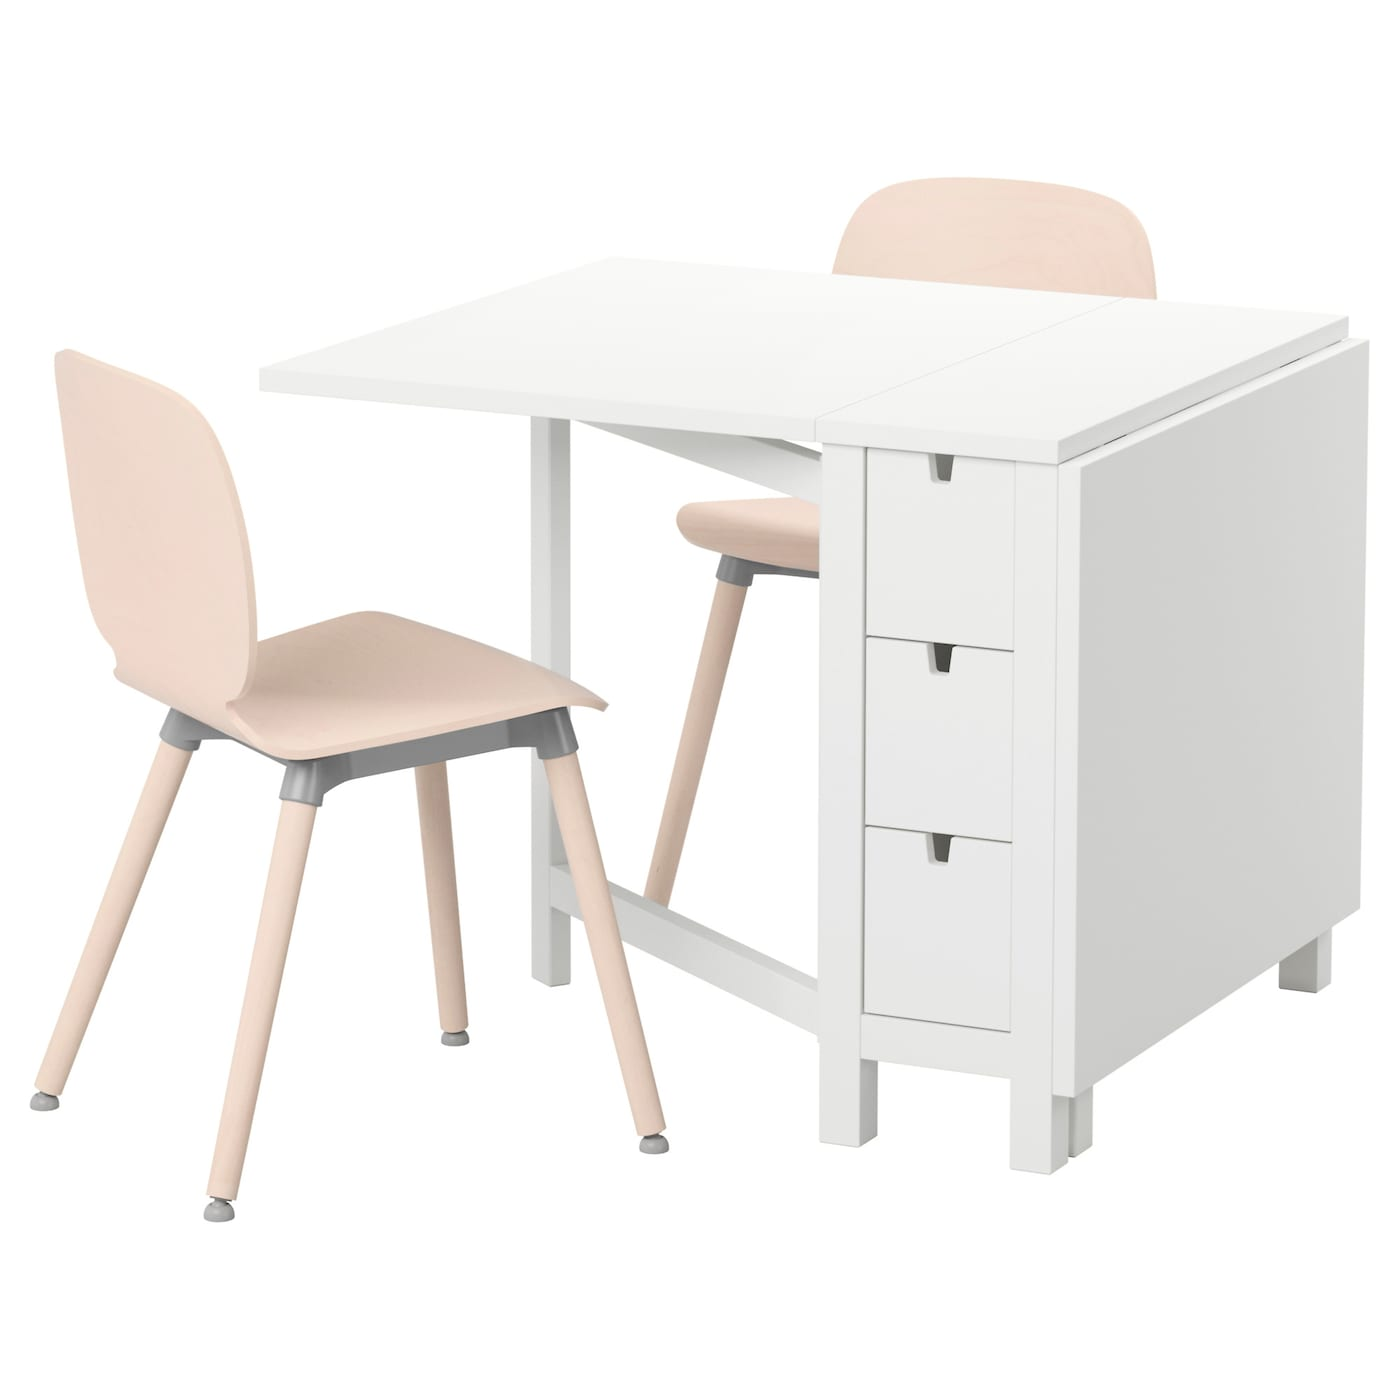 Norden svenbertil table and 2 chairs white birch 89 cm ikea for Table de norden ikea